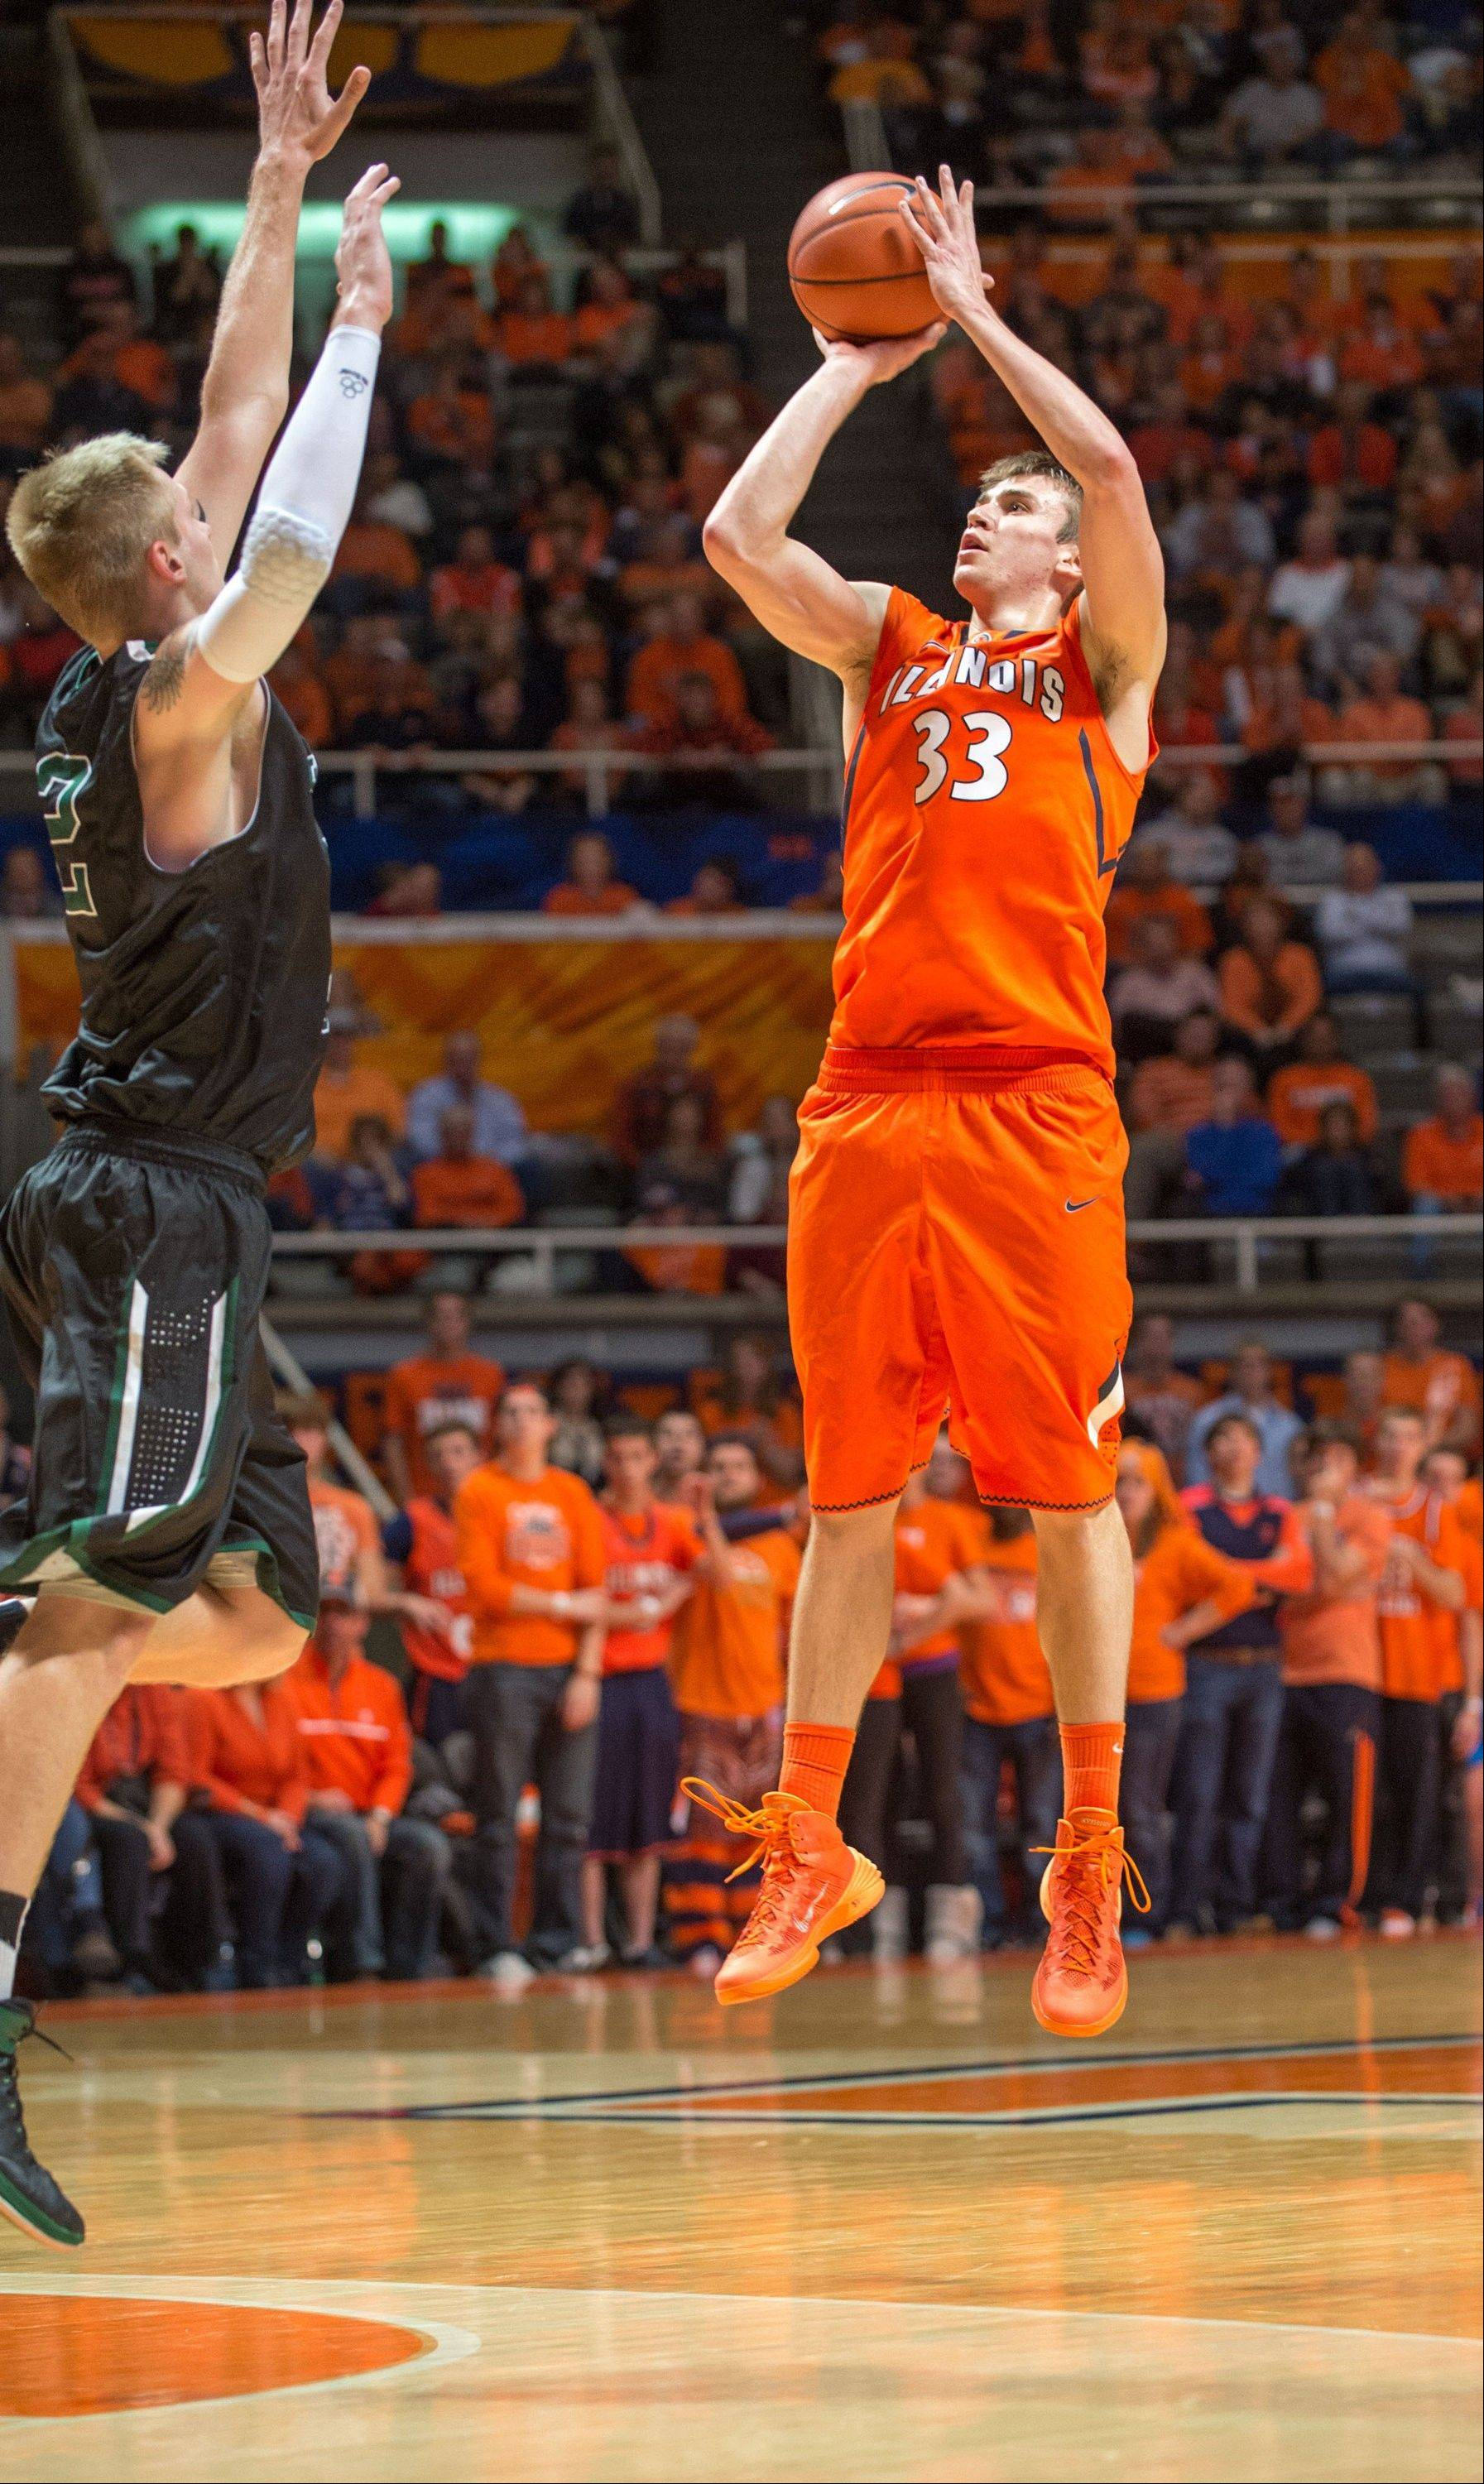 Illinois' Jon Ekey puts up a three-point basket past Chicago State's Matt Ross during the second half of Friday's game in Champaign.